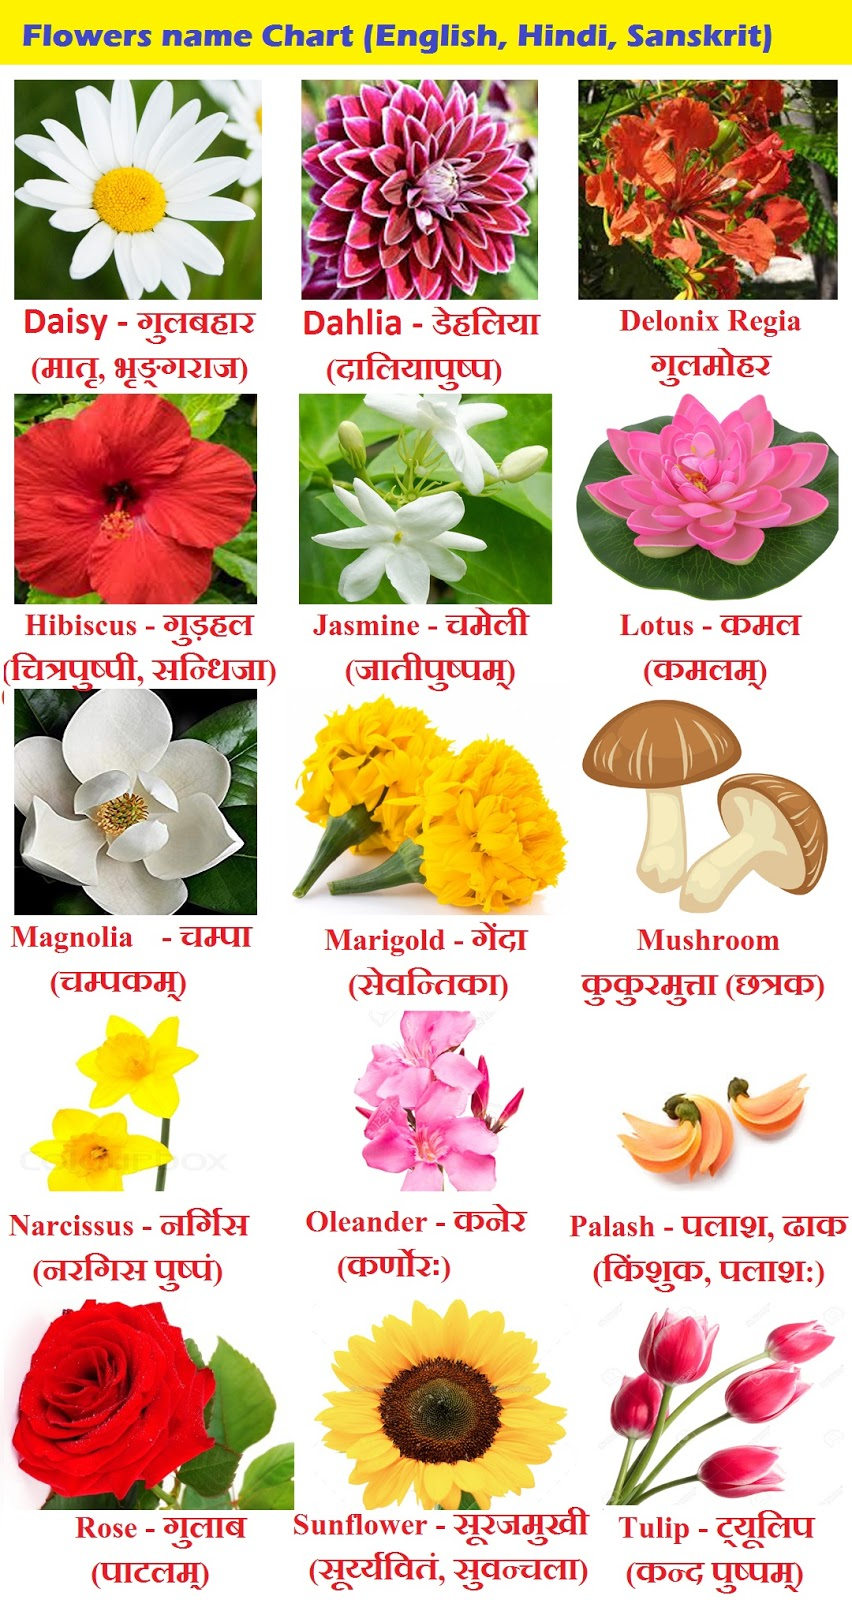 Flowers name Chart in Hindi Sanskrit and English - Flowers Name